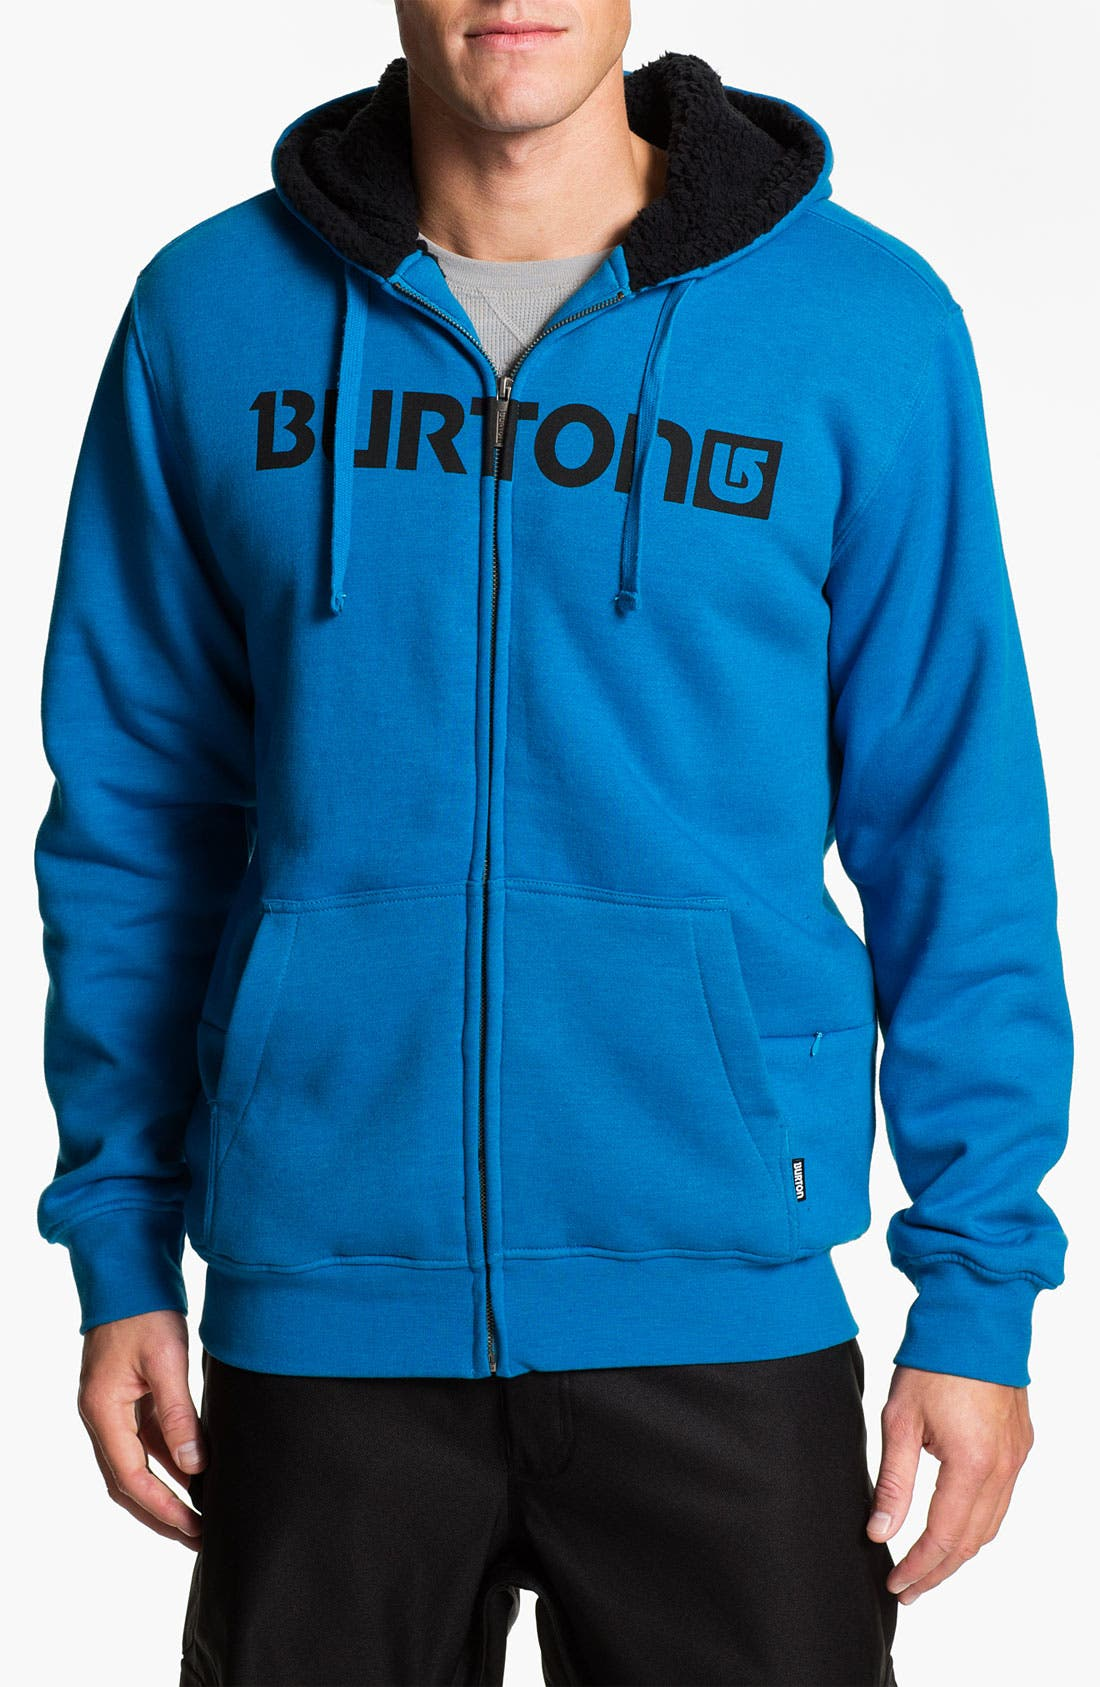 Alternate Image 1 Selected - Burton 'Fireside' Zip Hoodie